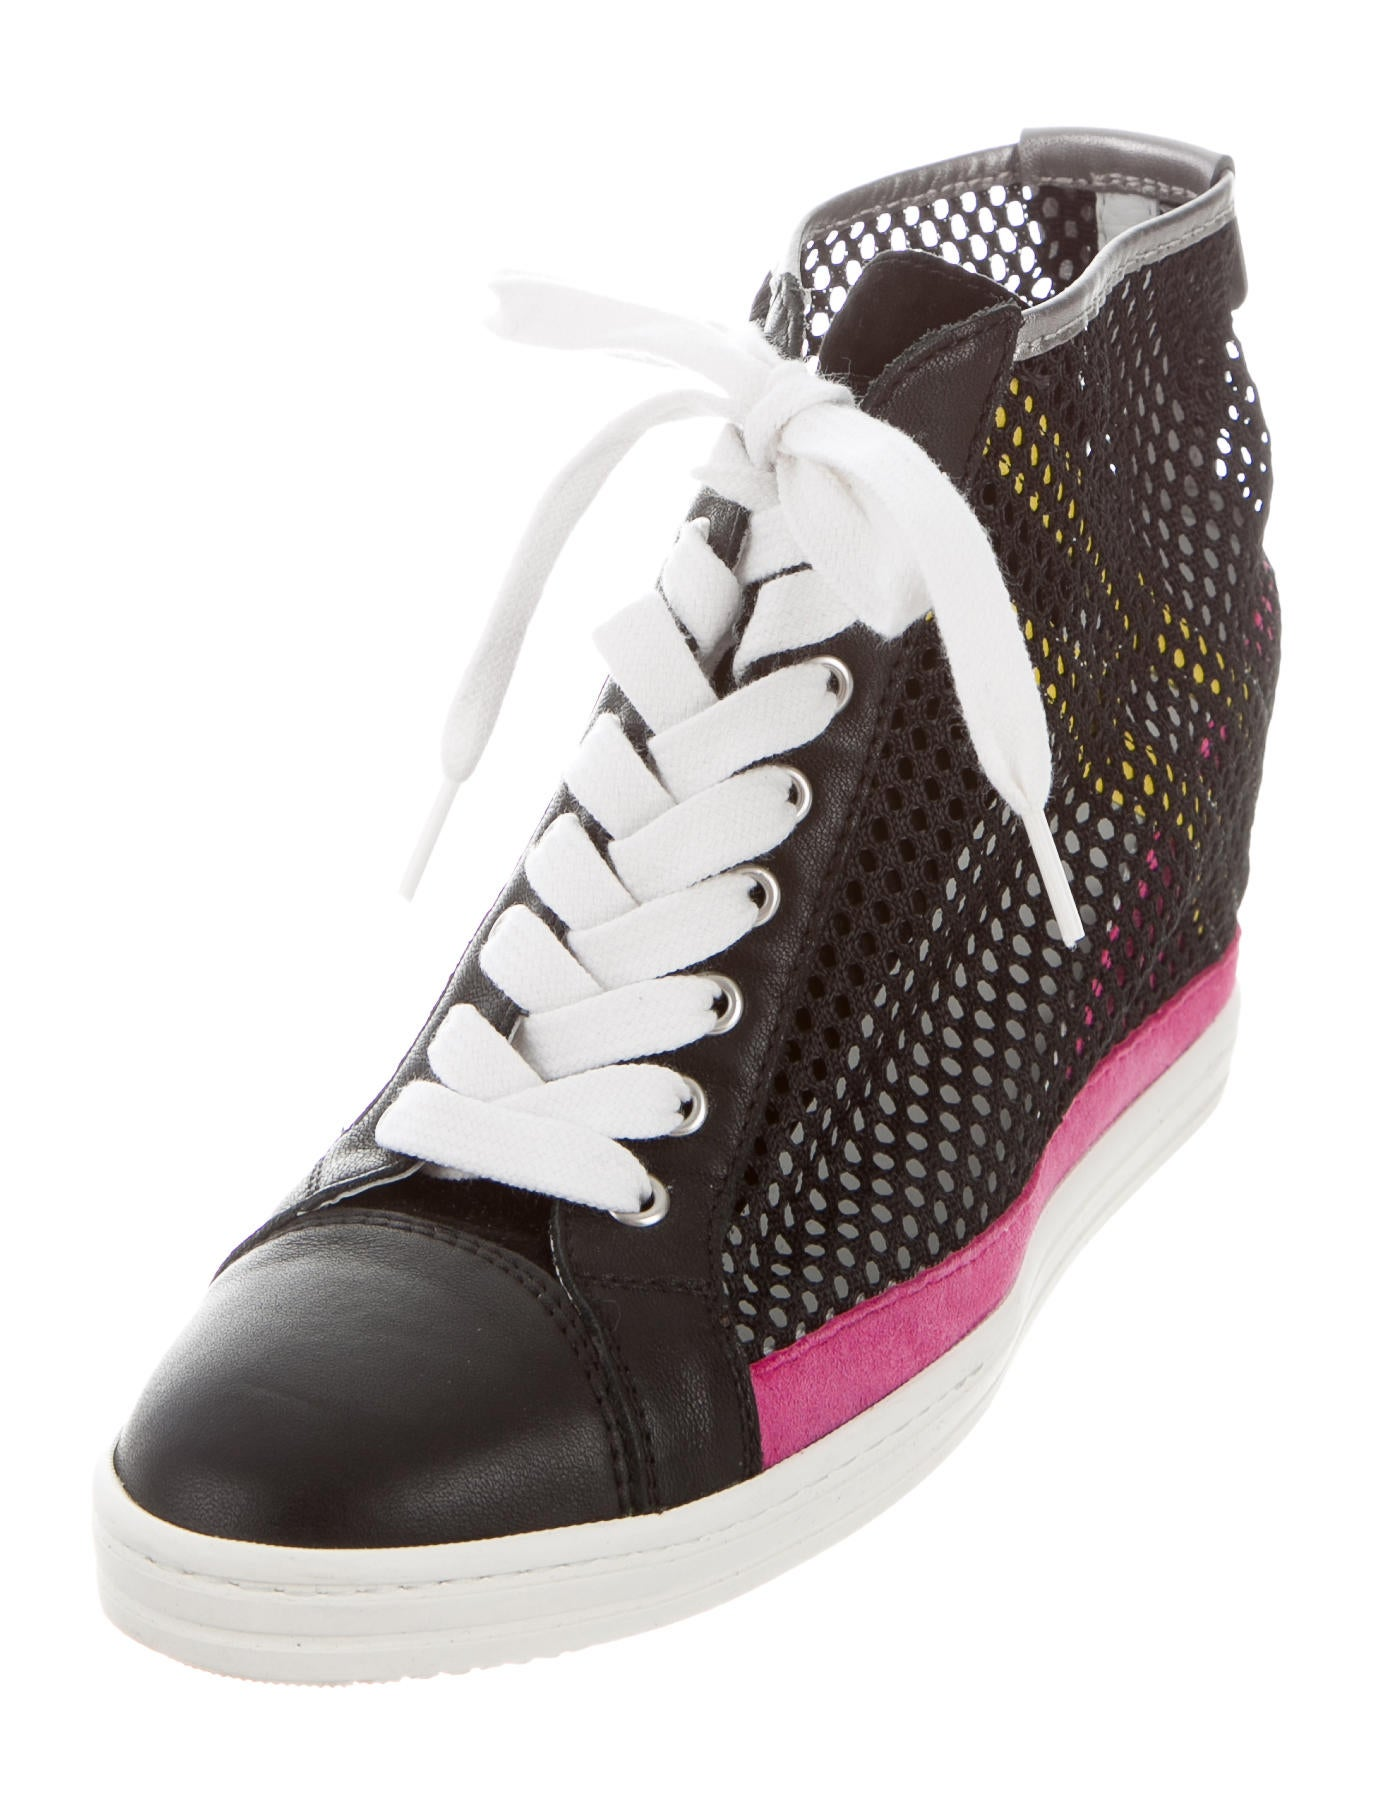 hogan rebel mesh wedge sneakers shoes whrbl20035 the realreal. Black Bedroom Furniture Sets. Home Design Ideas